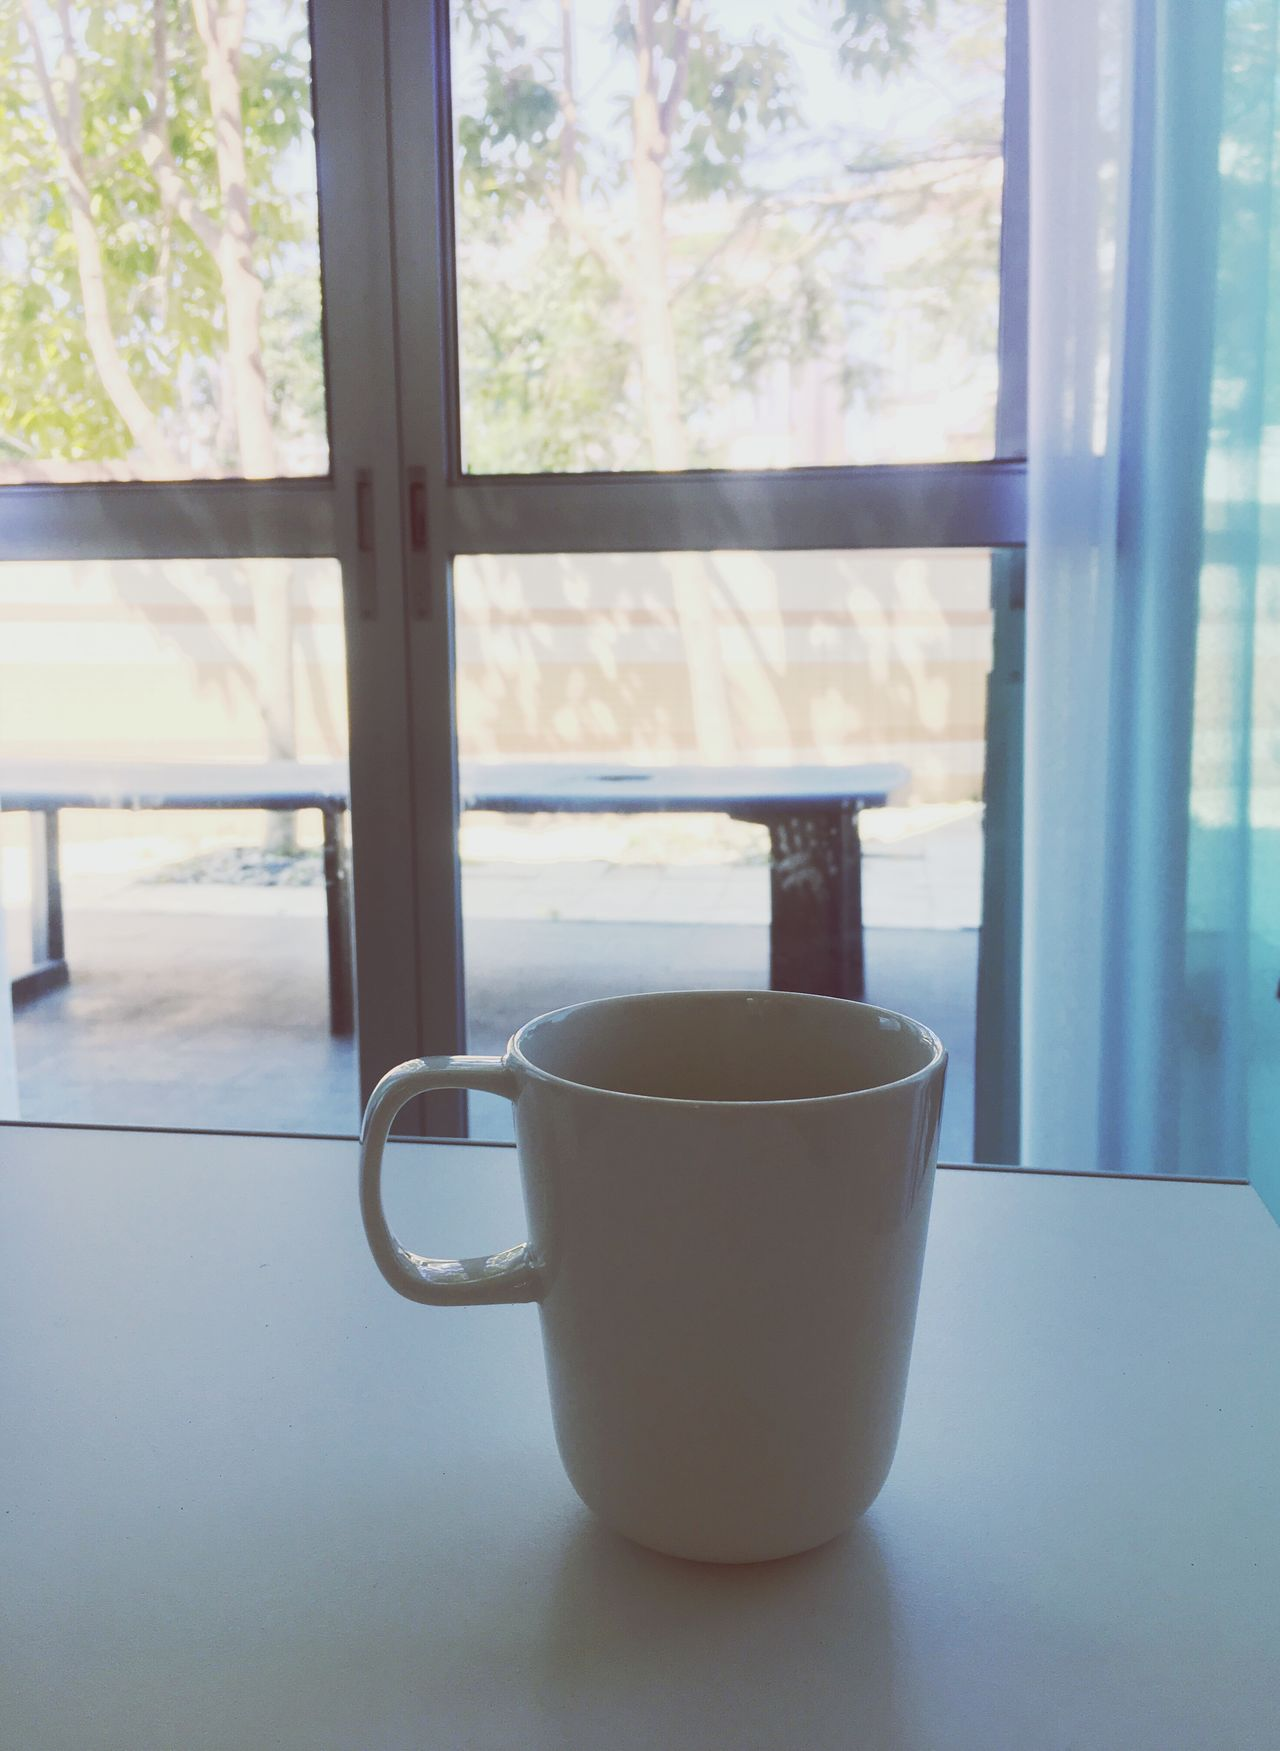 Close-up Day Window Indoors  Coffee Cup Window Sill Food And Drink Freshness Drink Refreshment No People Tea Sunlight Windy Trees